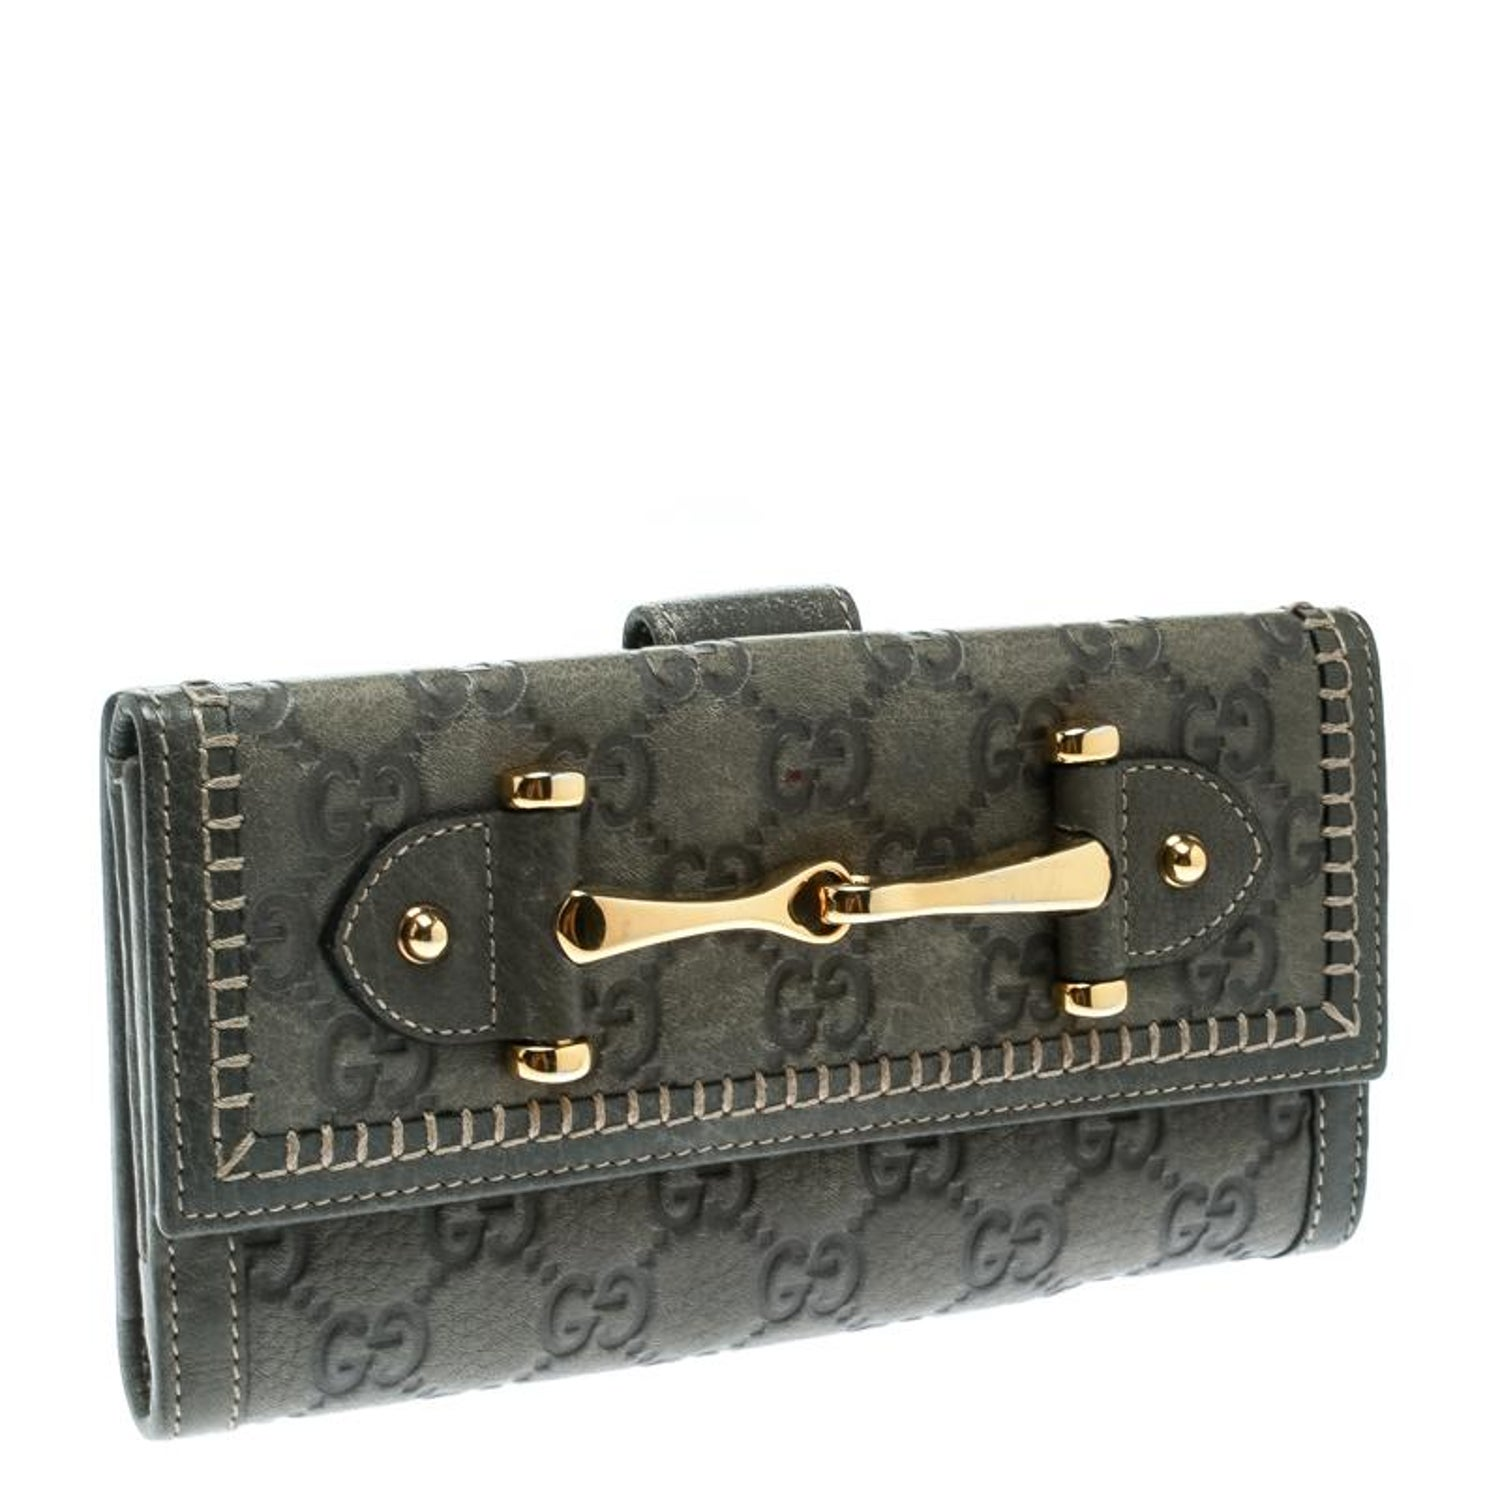 578cd60d1c6858 Gucci Grey Guccissima Leather Continental Wallet For Sale at 1stdibs